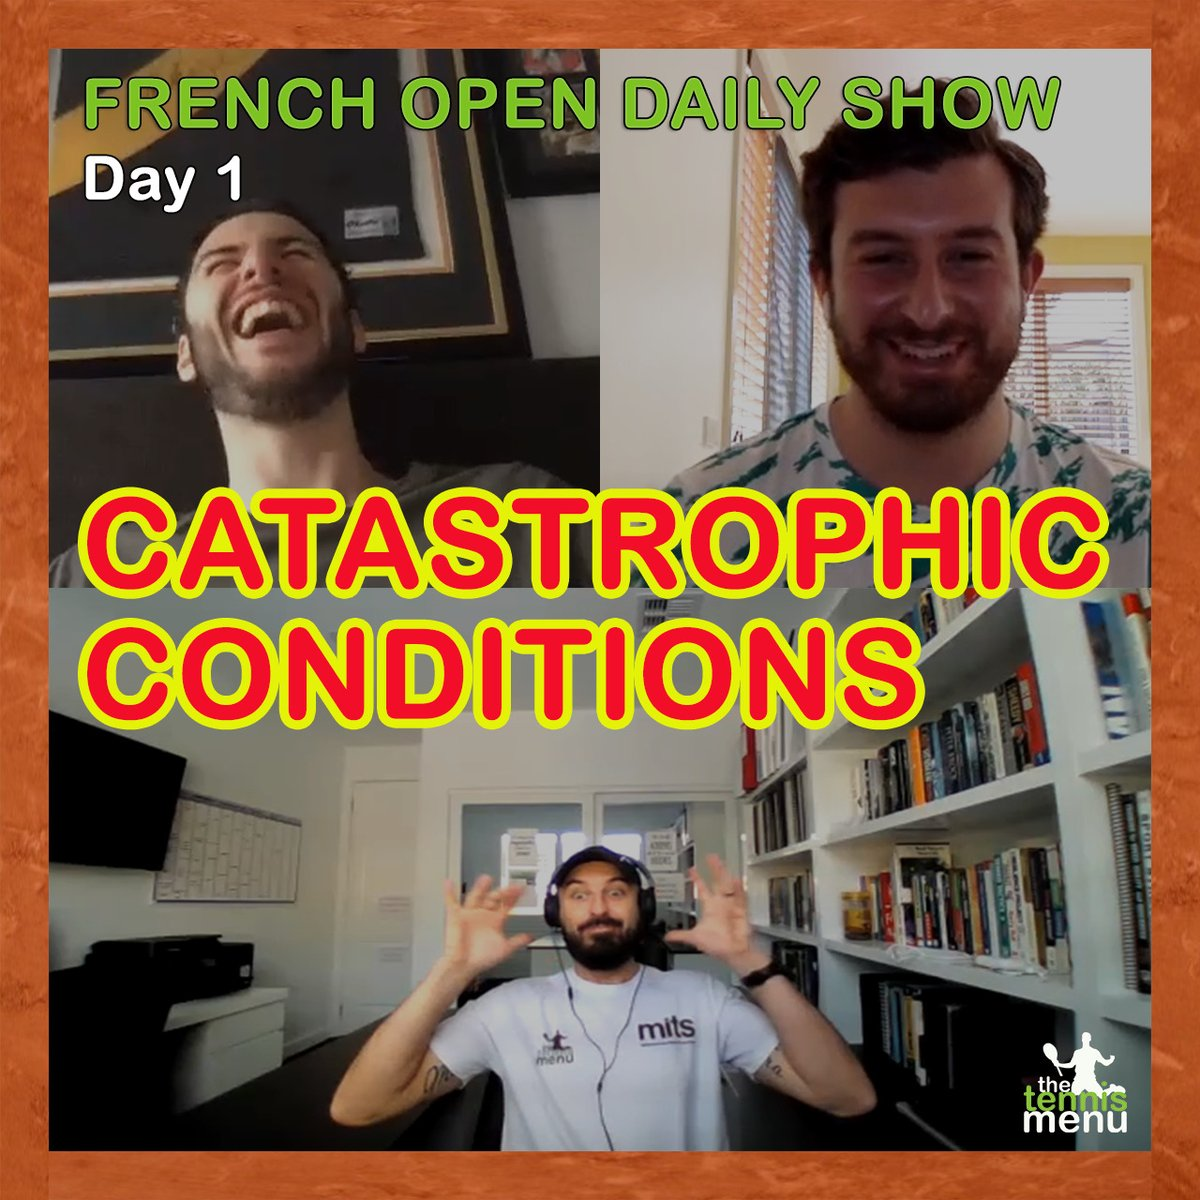 🎥 WATCH | Day one show with @BreakPointPod has arrived! We review all the action and assess the fallout of the new balls.   YouTube 👉 https://t.co/orYtqysBAS Spotify 👉 https://t.co/BKbEt1qPis Search 'The Tennis Menu' on Facebook   #RolandGarros https://t.co/FIEZH56qeV